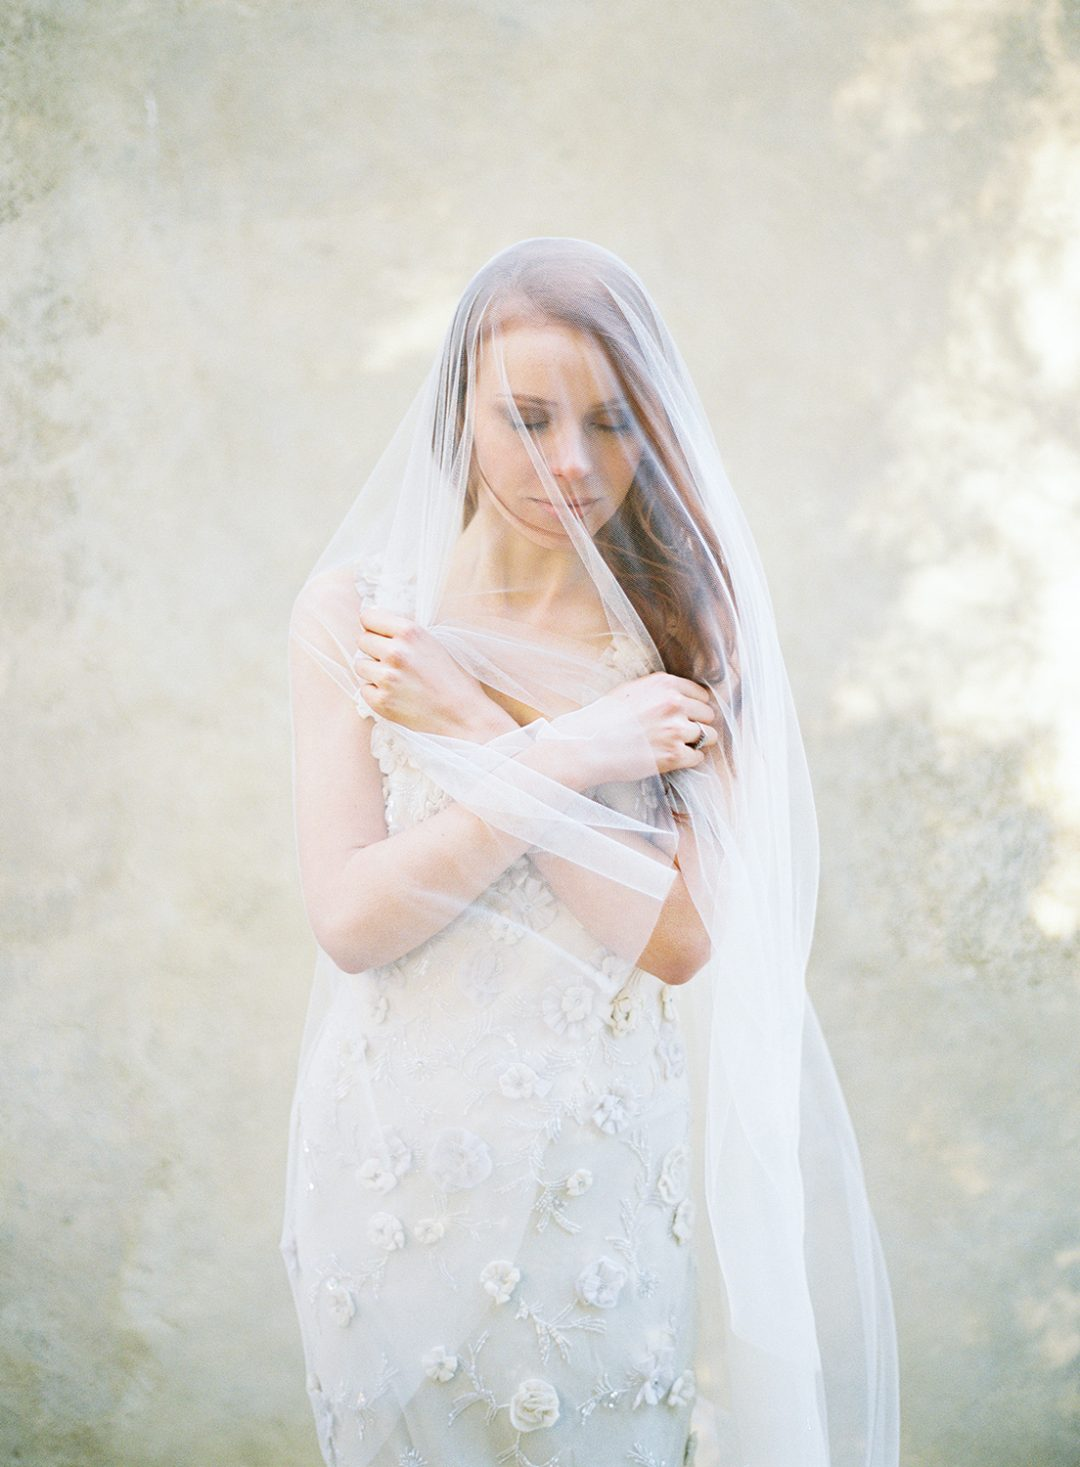 Soft tulle wedding veil with blusher, handmade by SIBO Designs www.sibodesigns.com